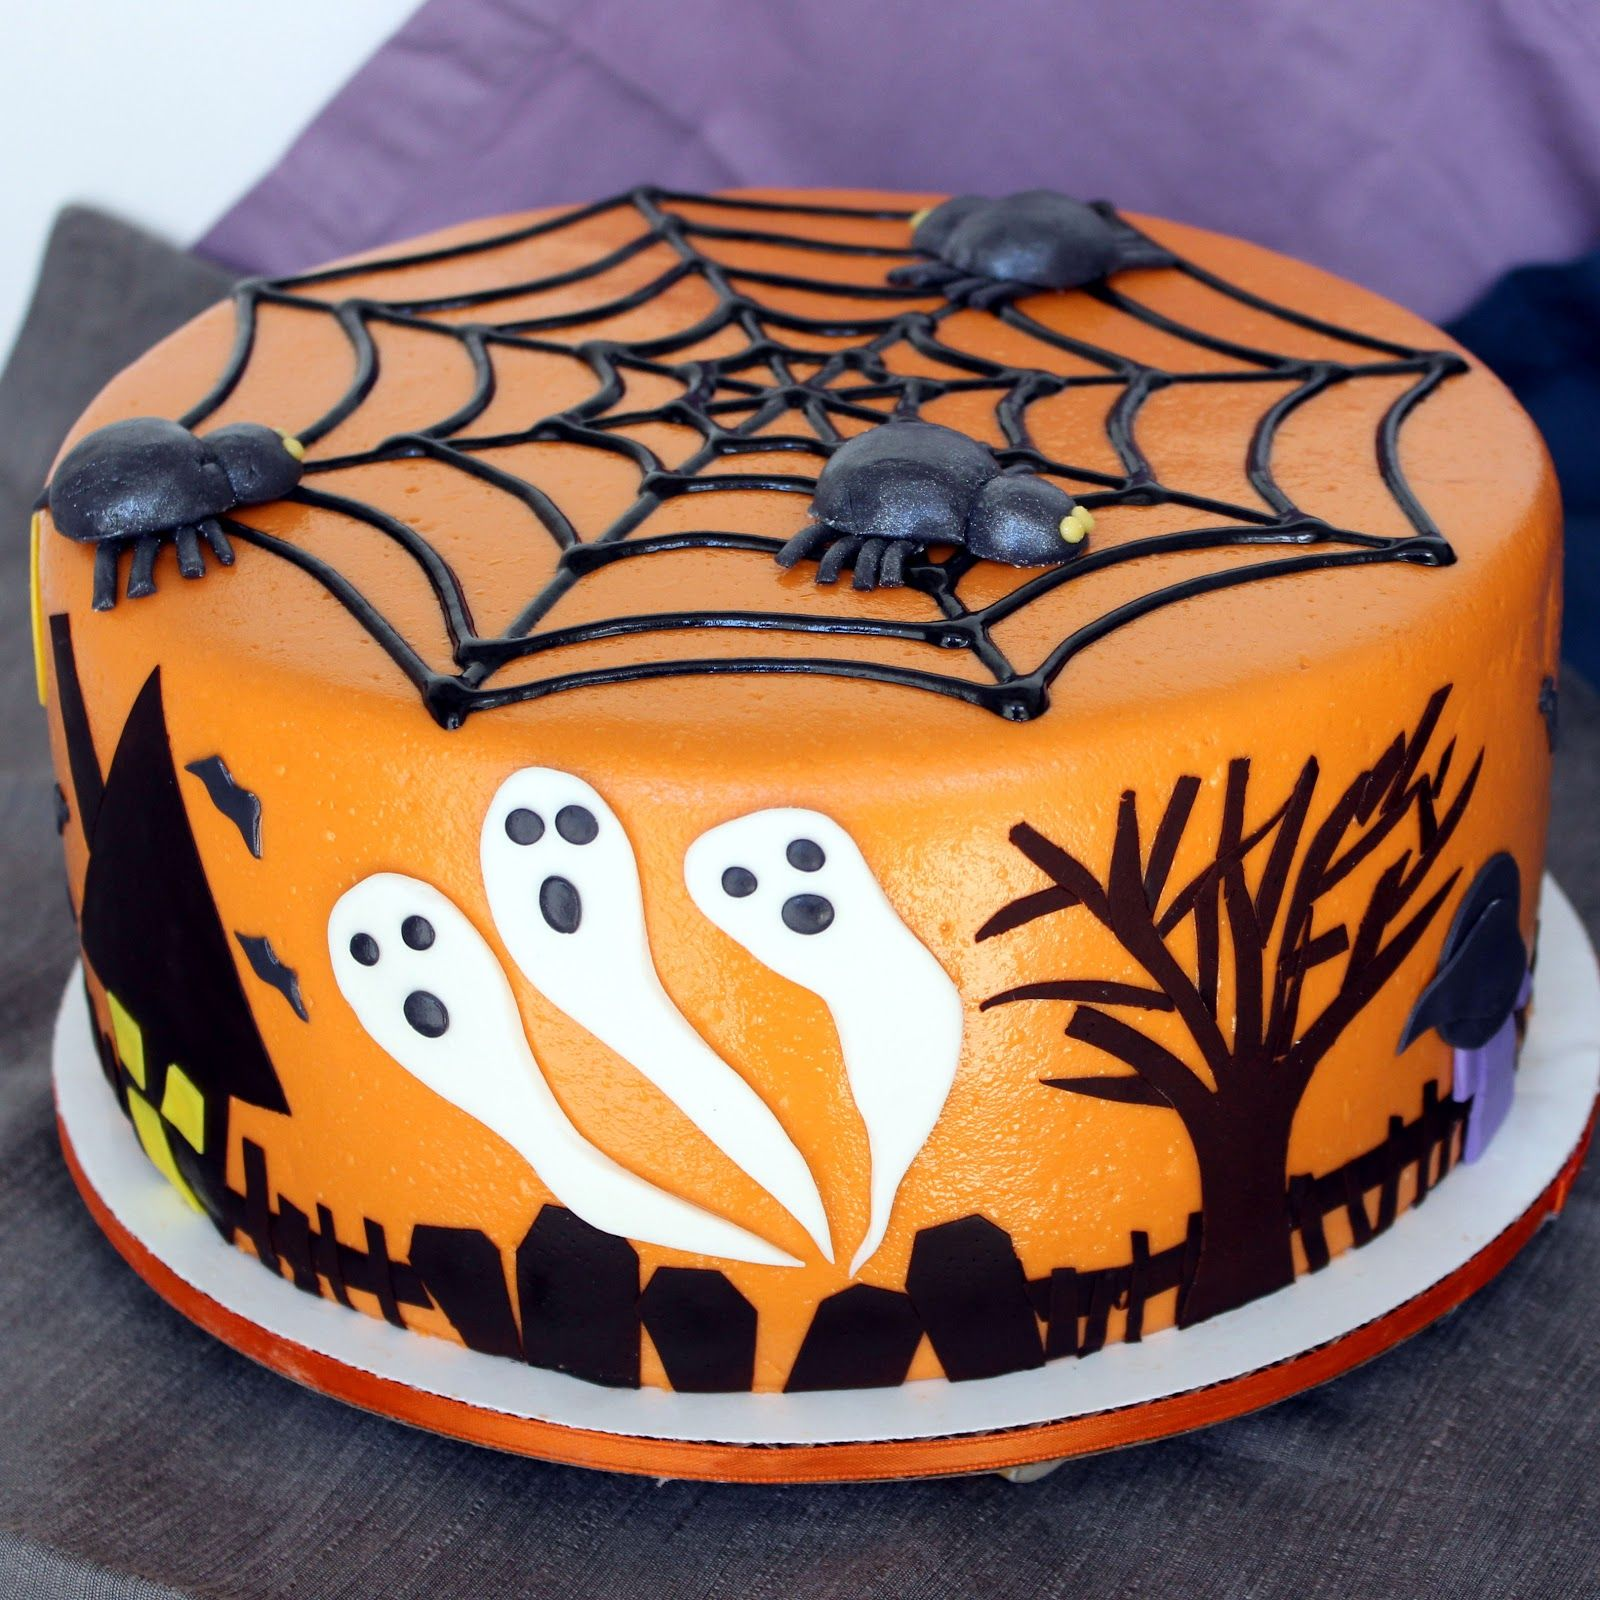 Halloween Cake Ideas Halloween Cakes Halloween Birthday Cakes